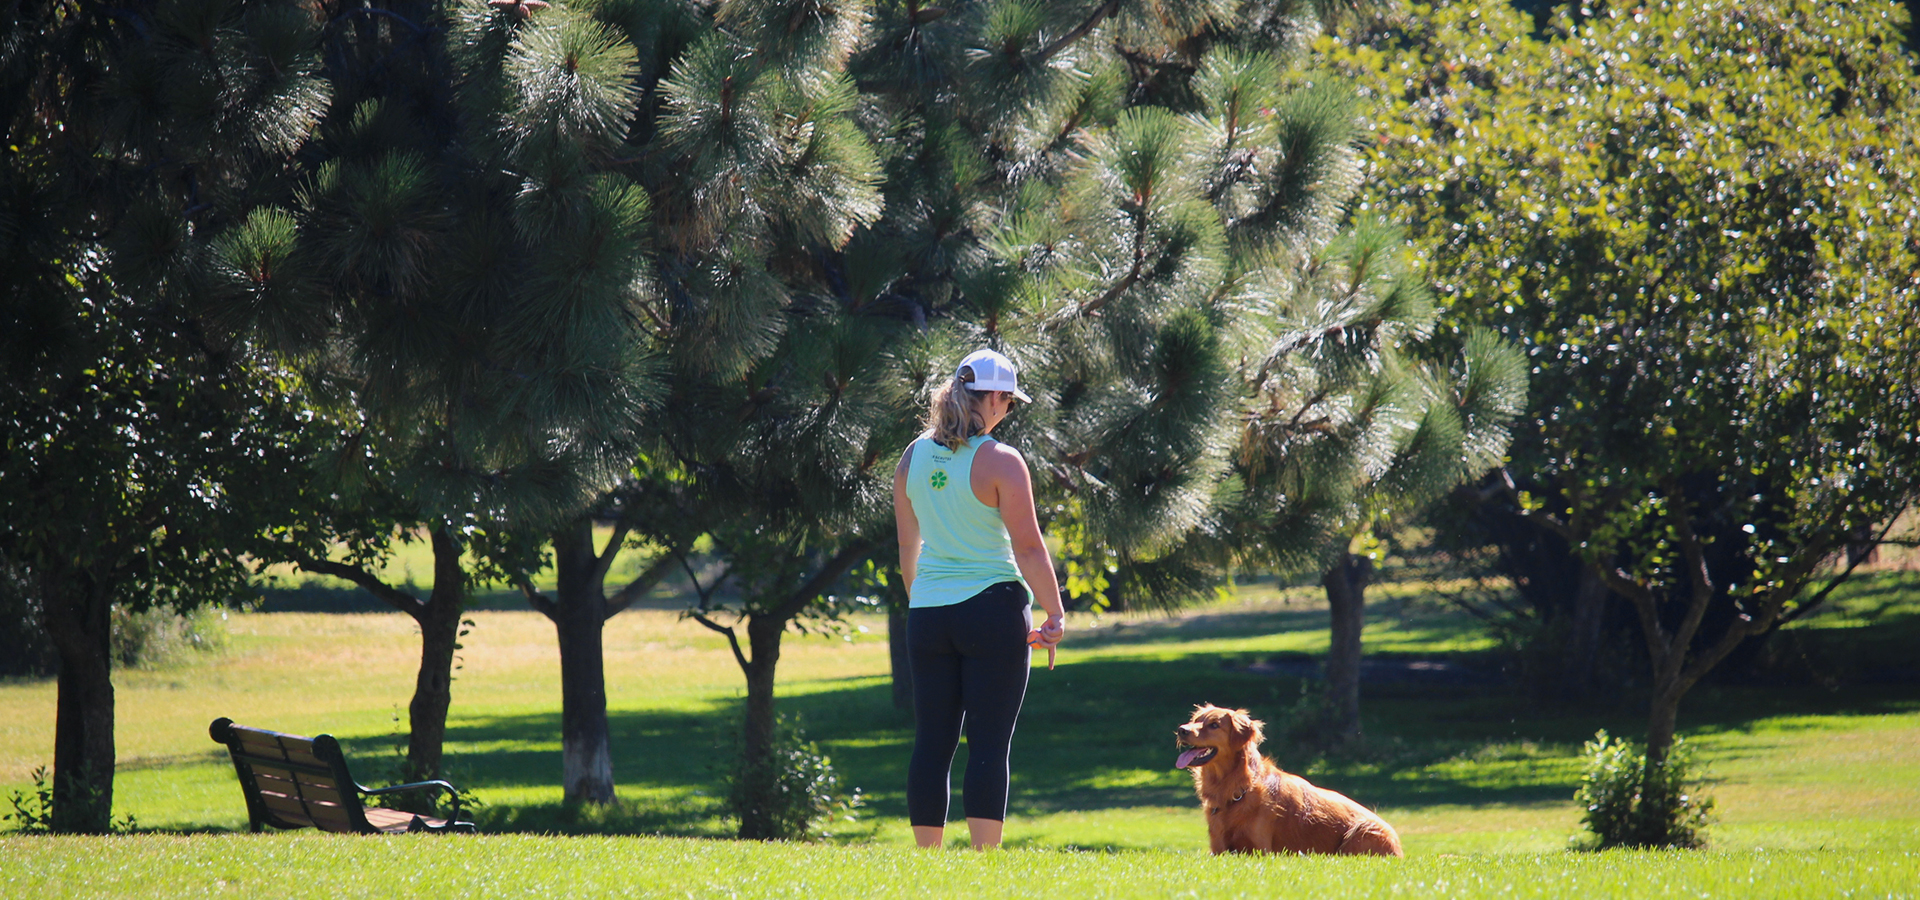 Hollinshead-Dog-Park-in-Bend-Oregon